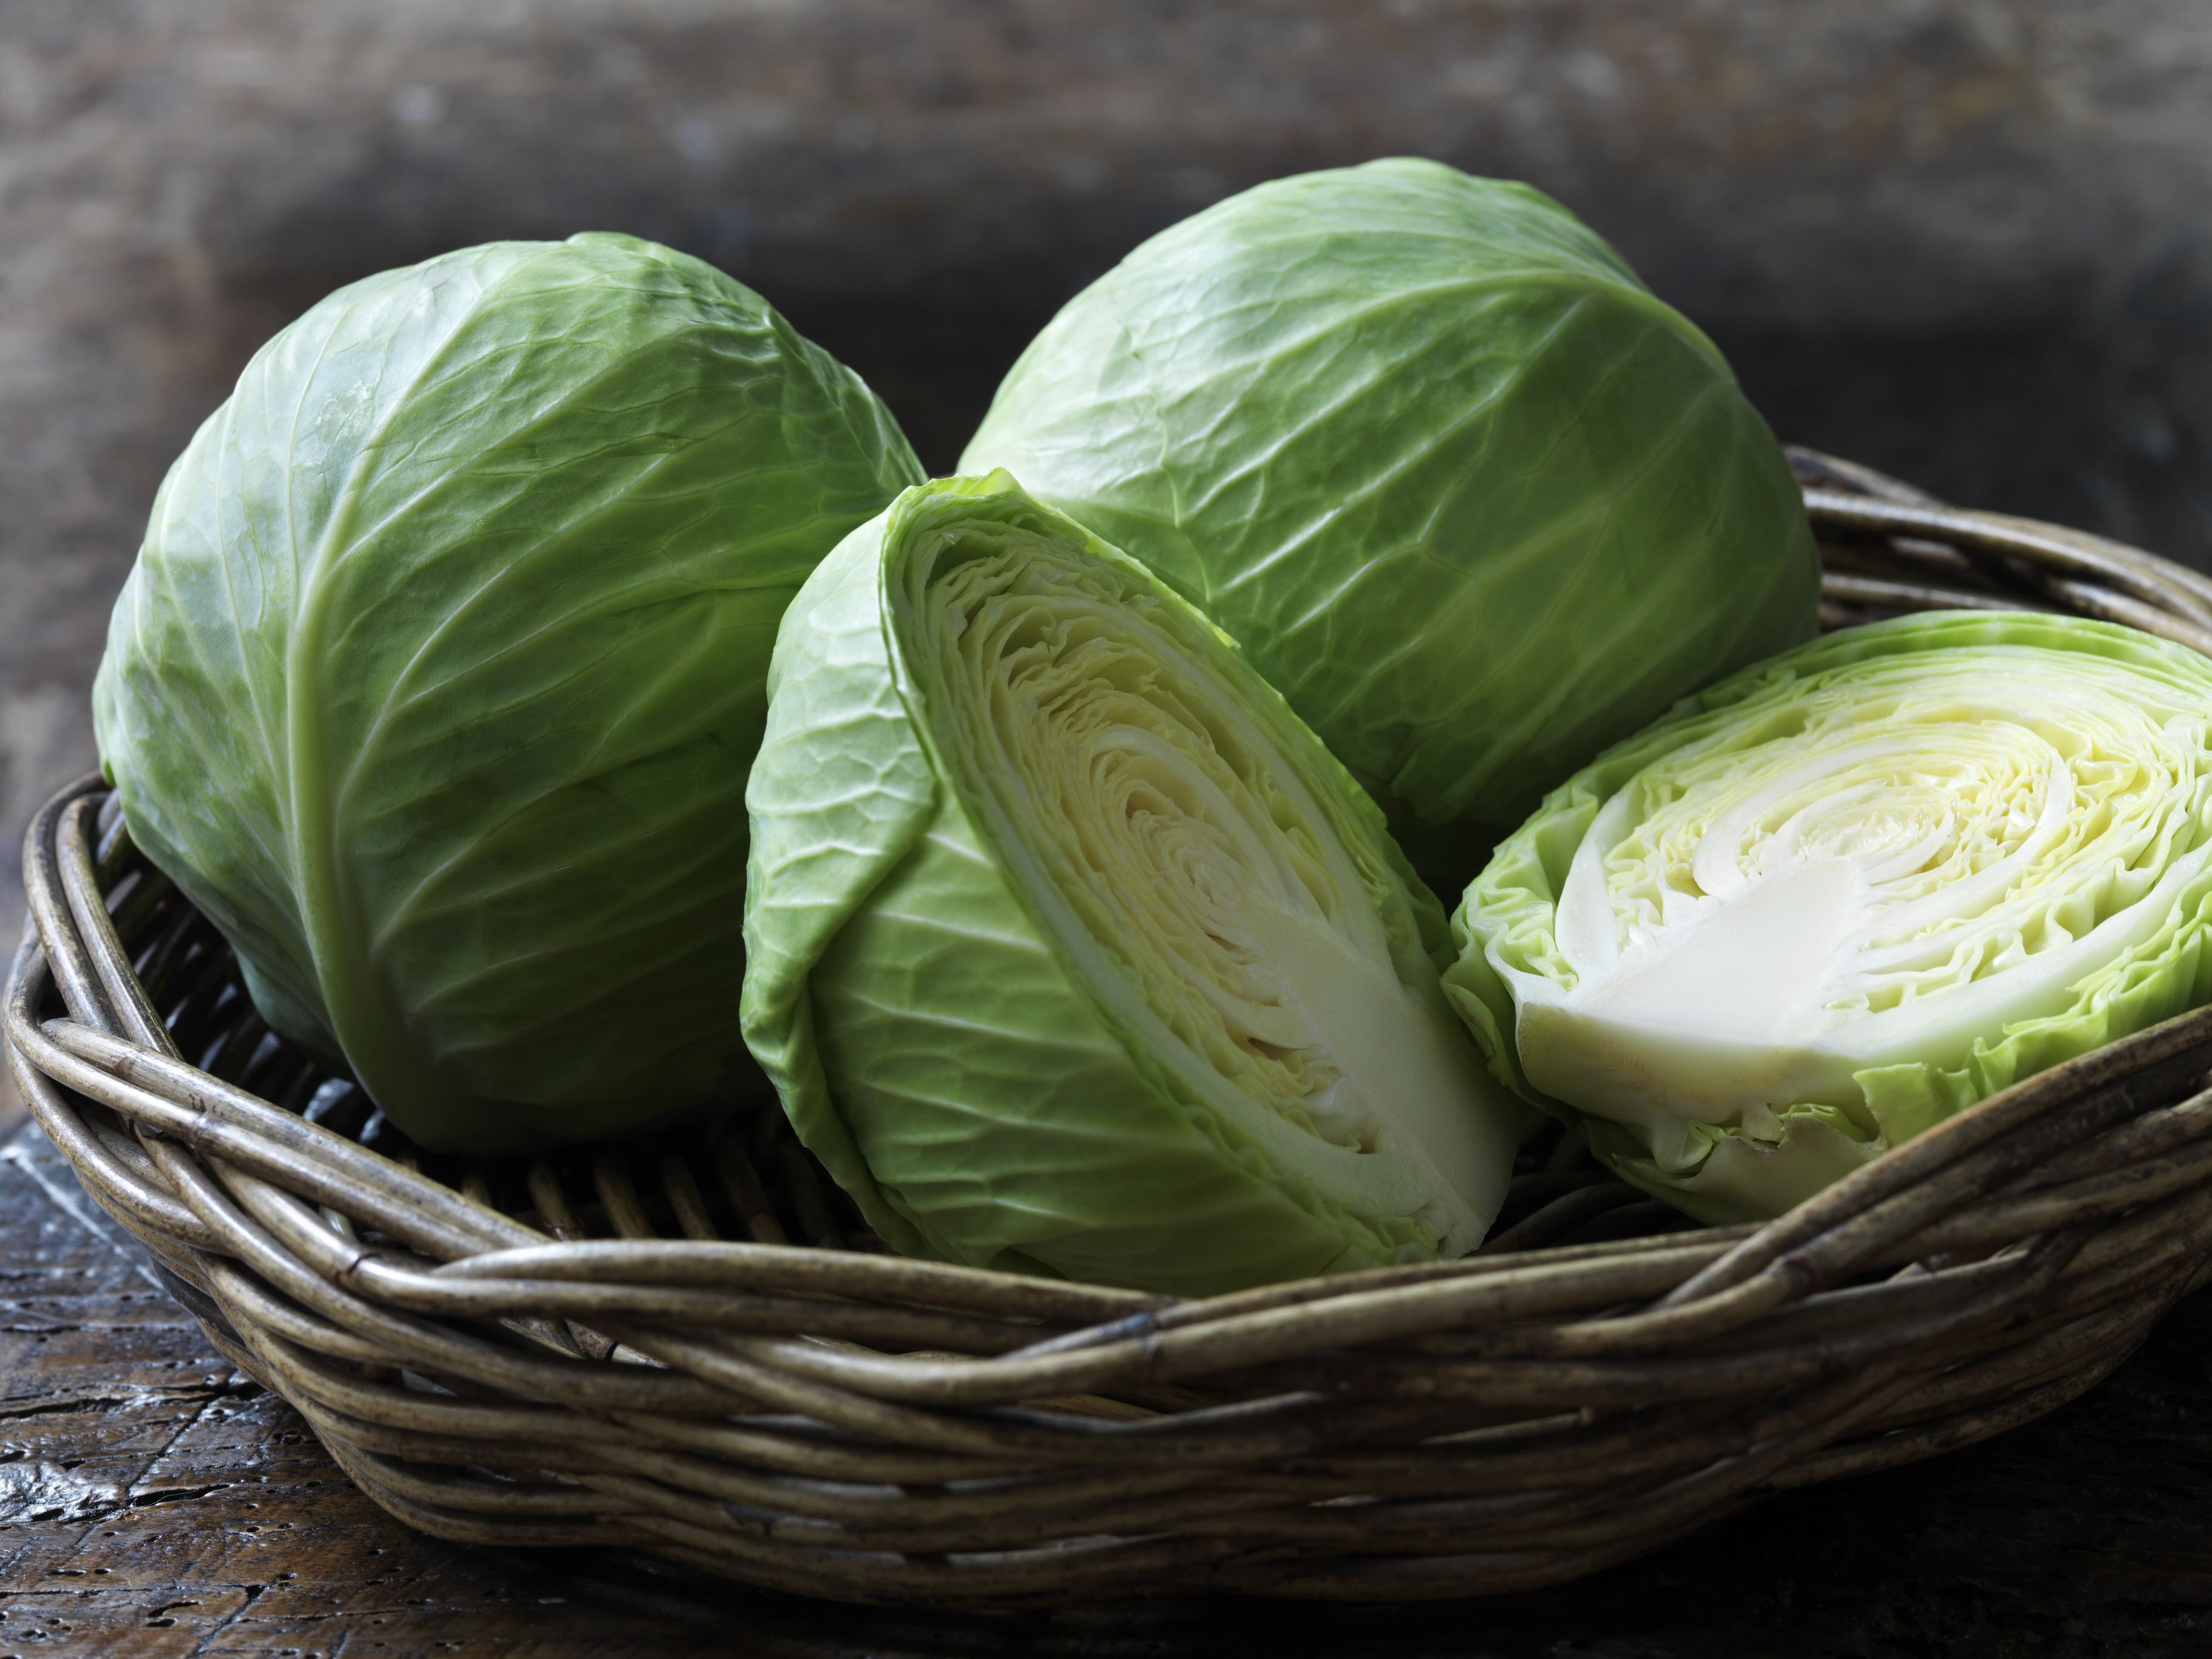 Cabbage bloating